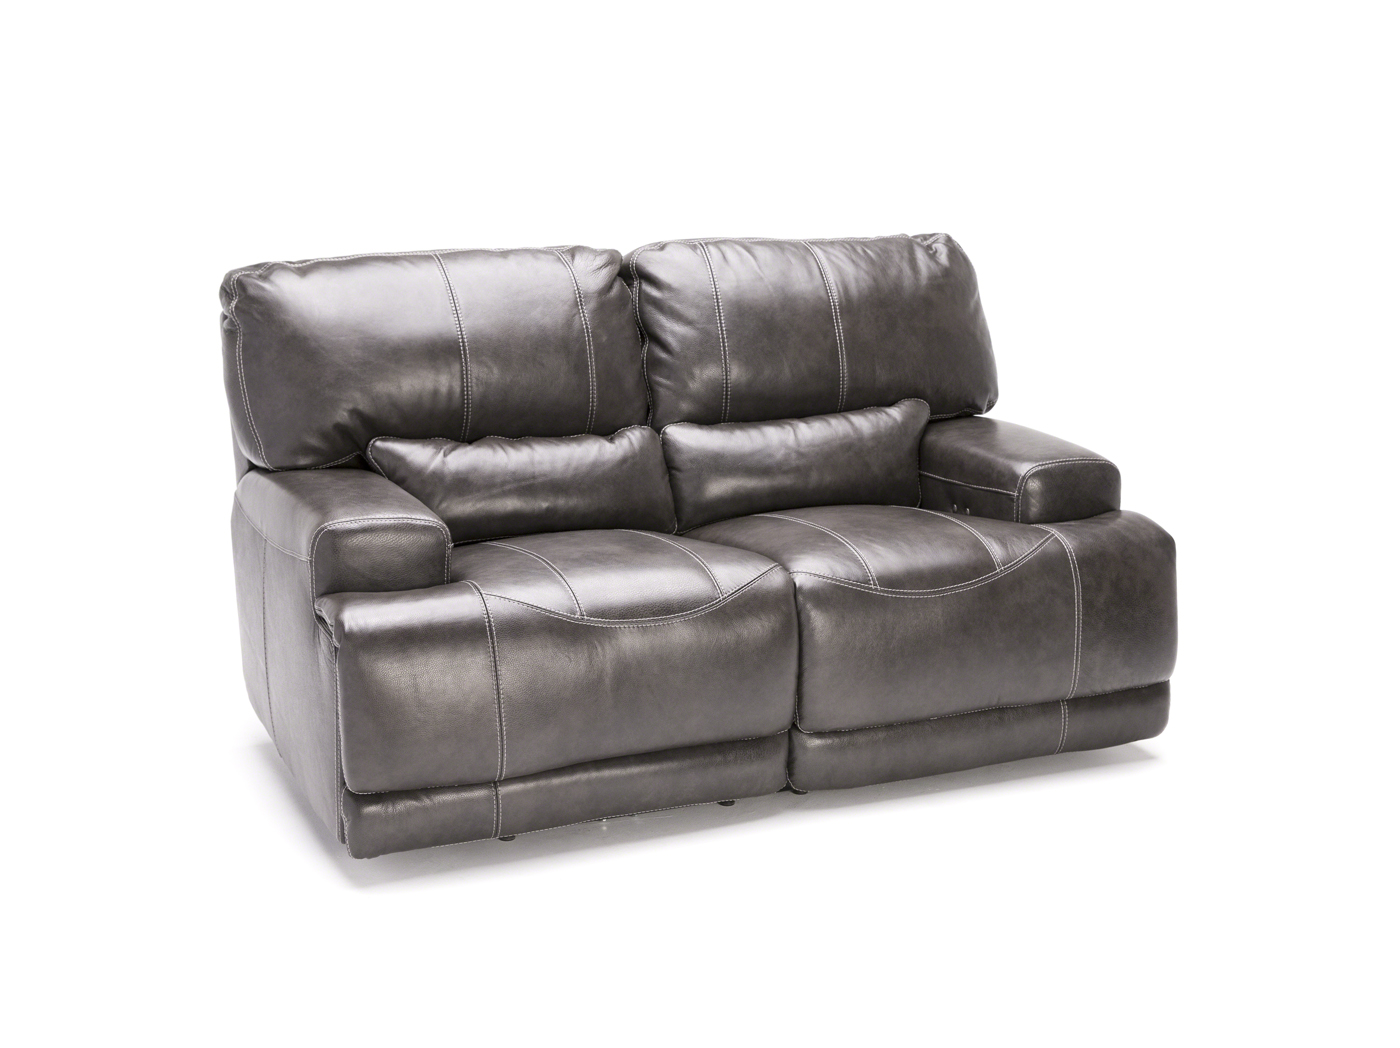 leon to living loveseat hover s product item piermont loveseats bisque furniture room reclining zoom